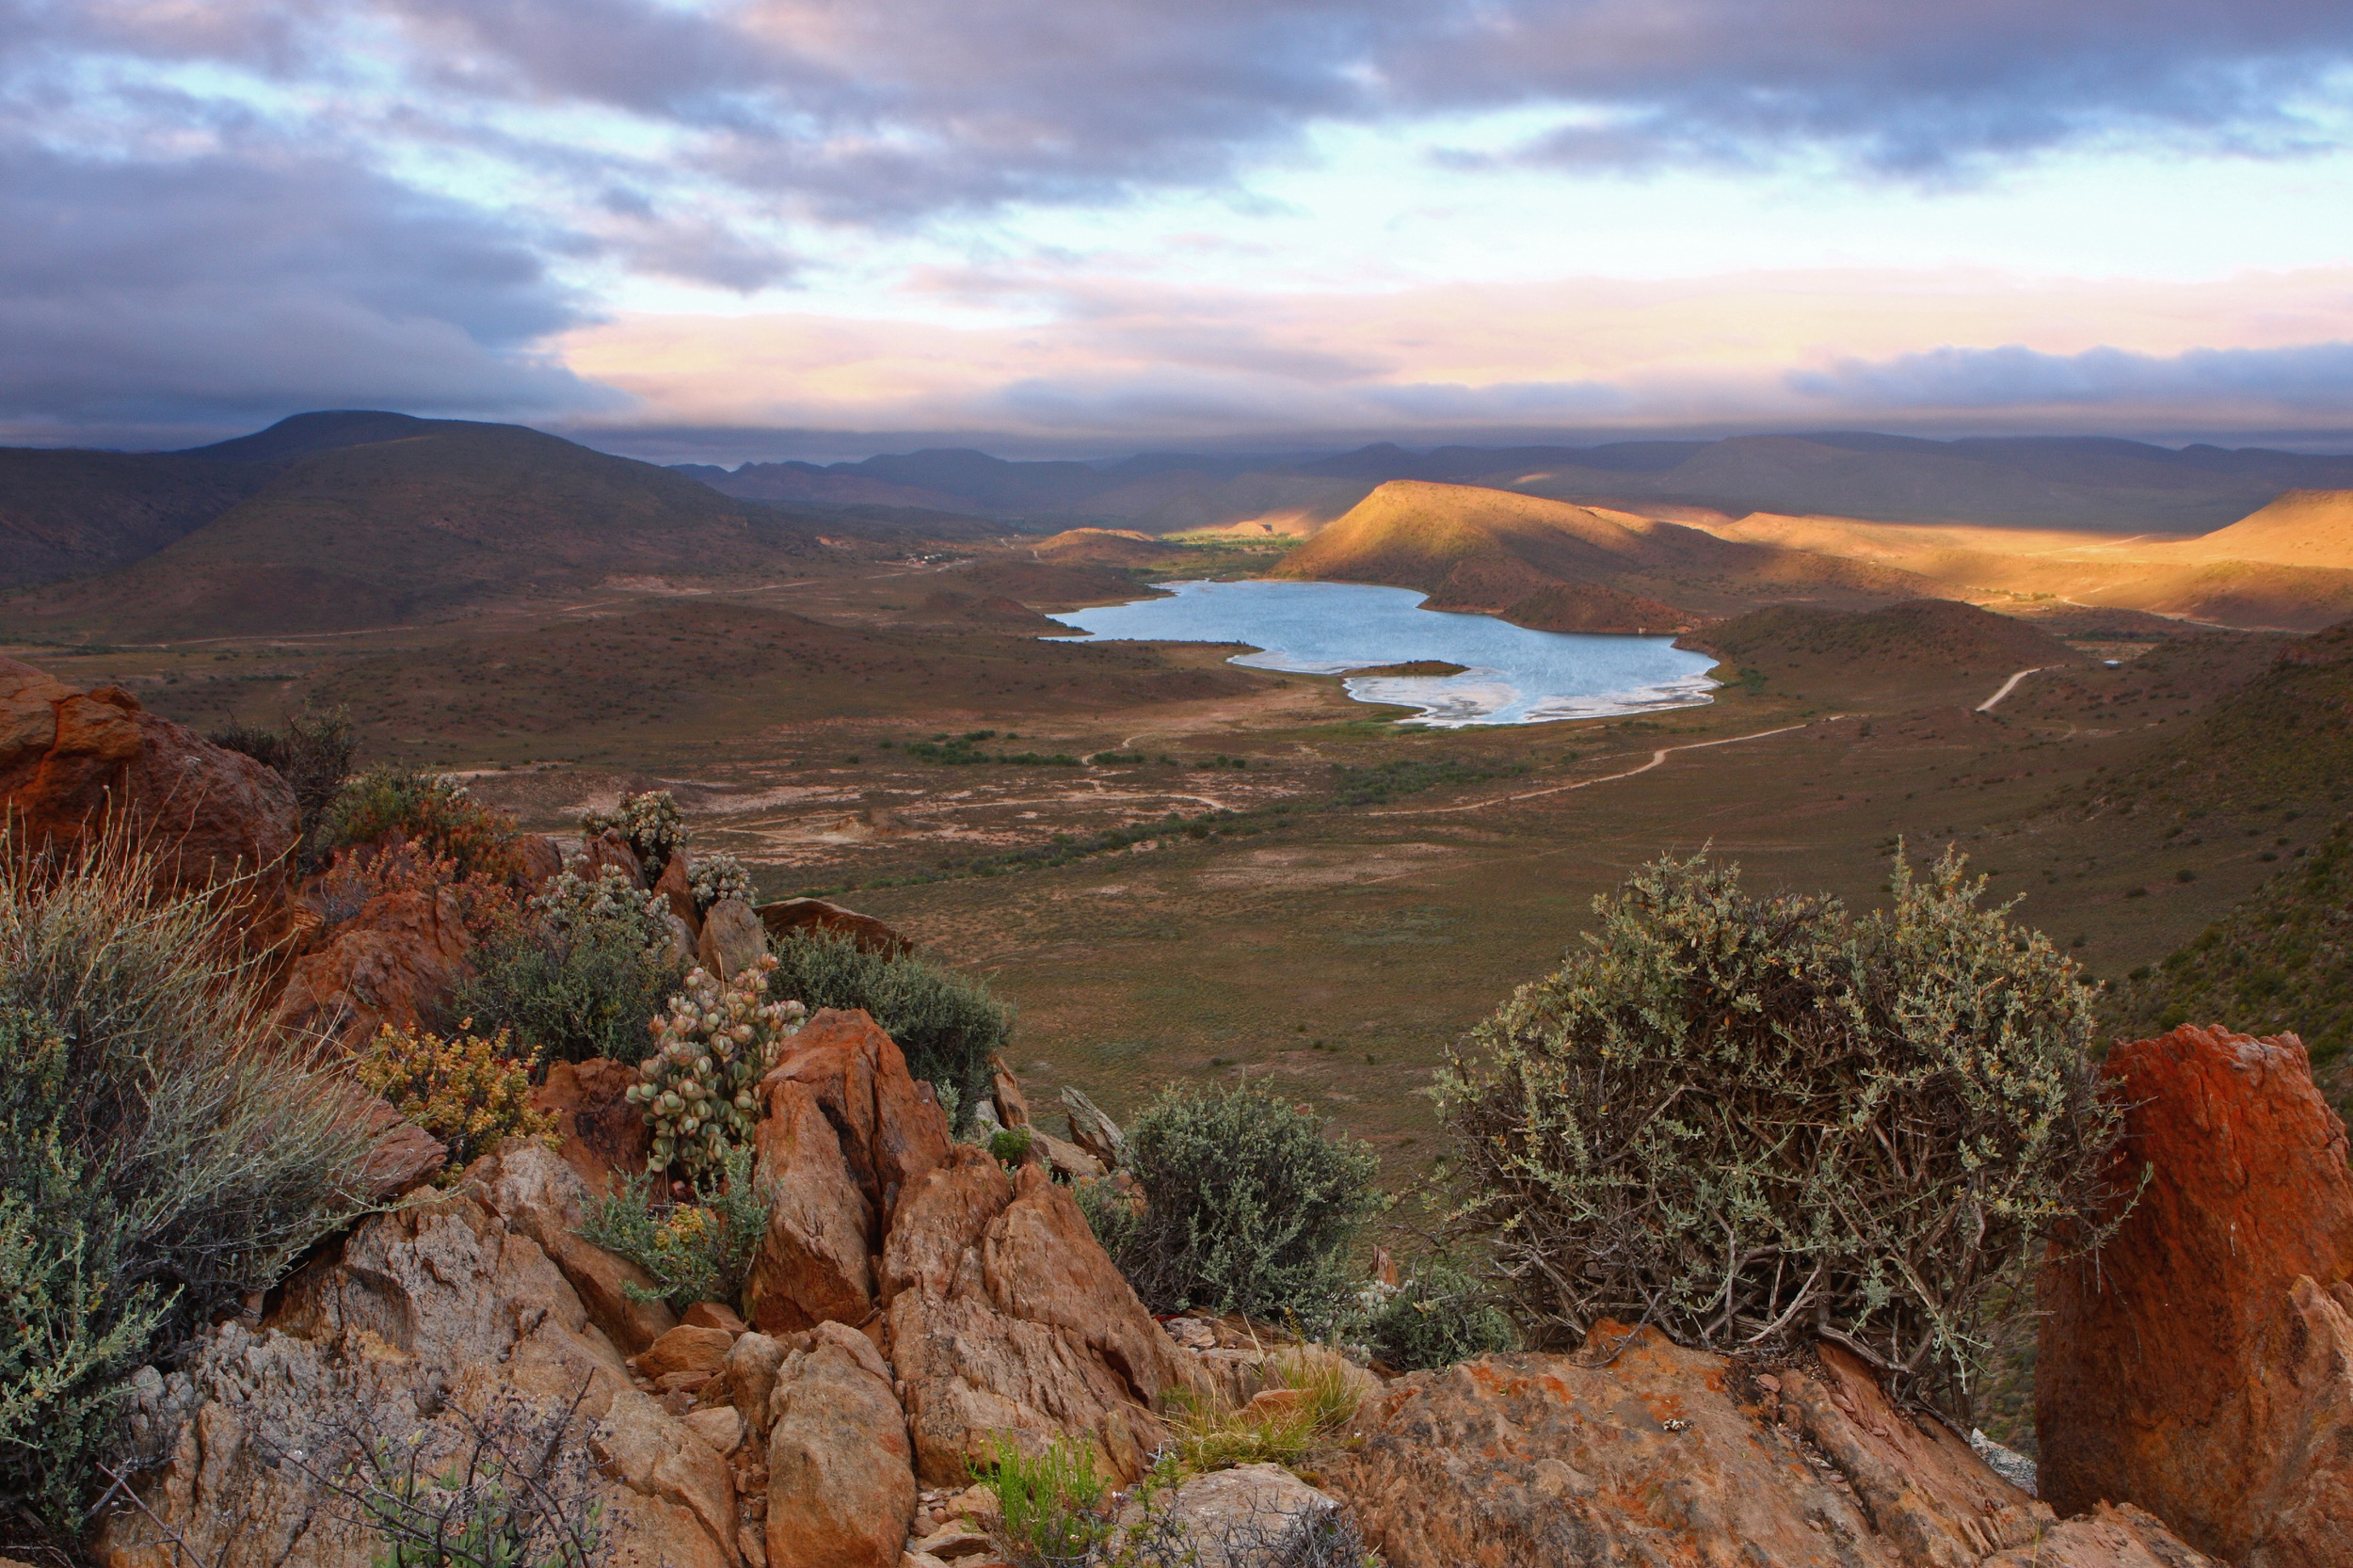 Copy right to SANBONA. LANDSCAPES4.jpg